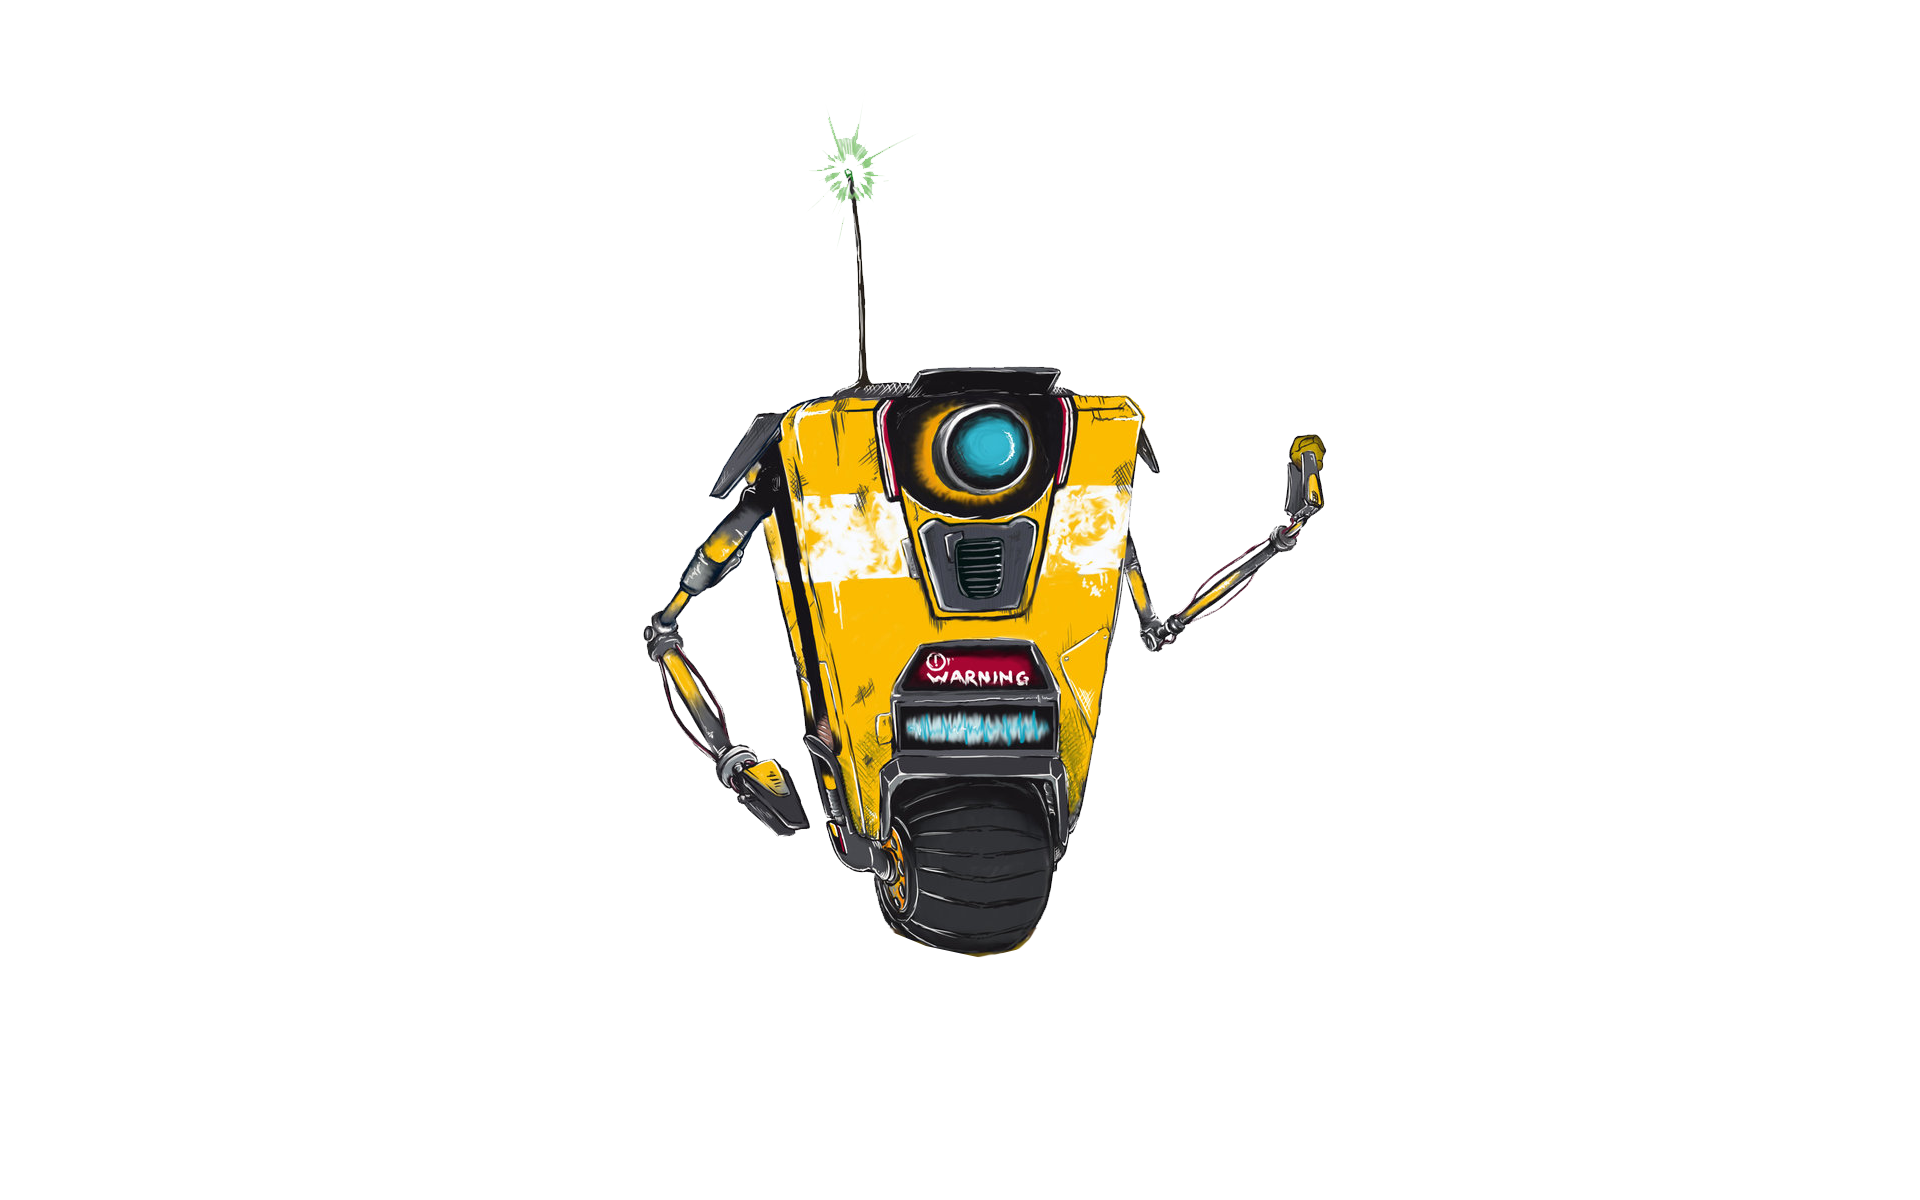 Borderlands wallpaper spectium claptrap japong   1142486 1920x1200